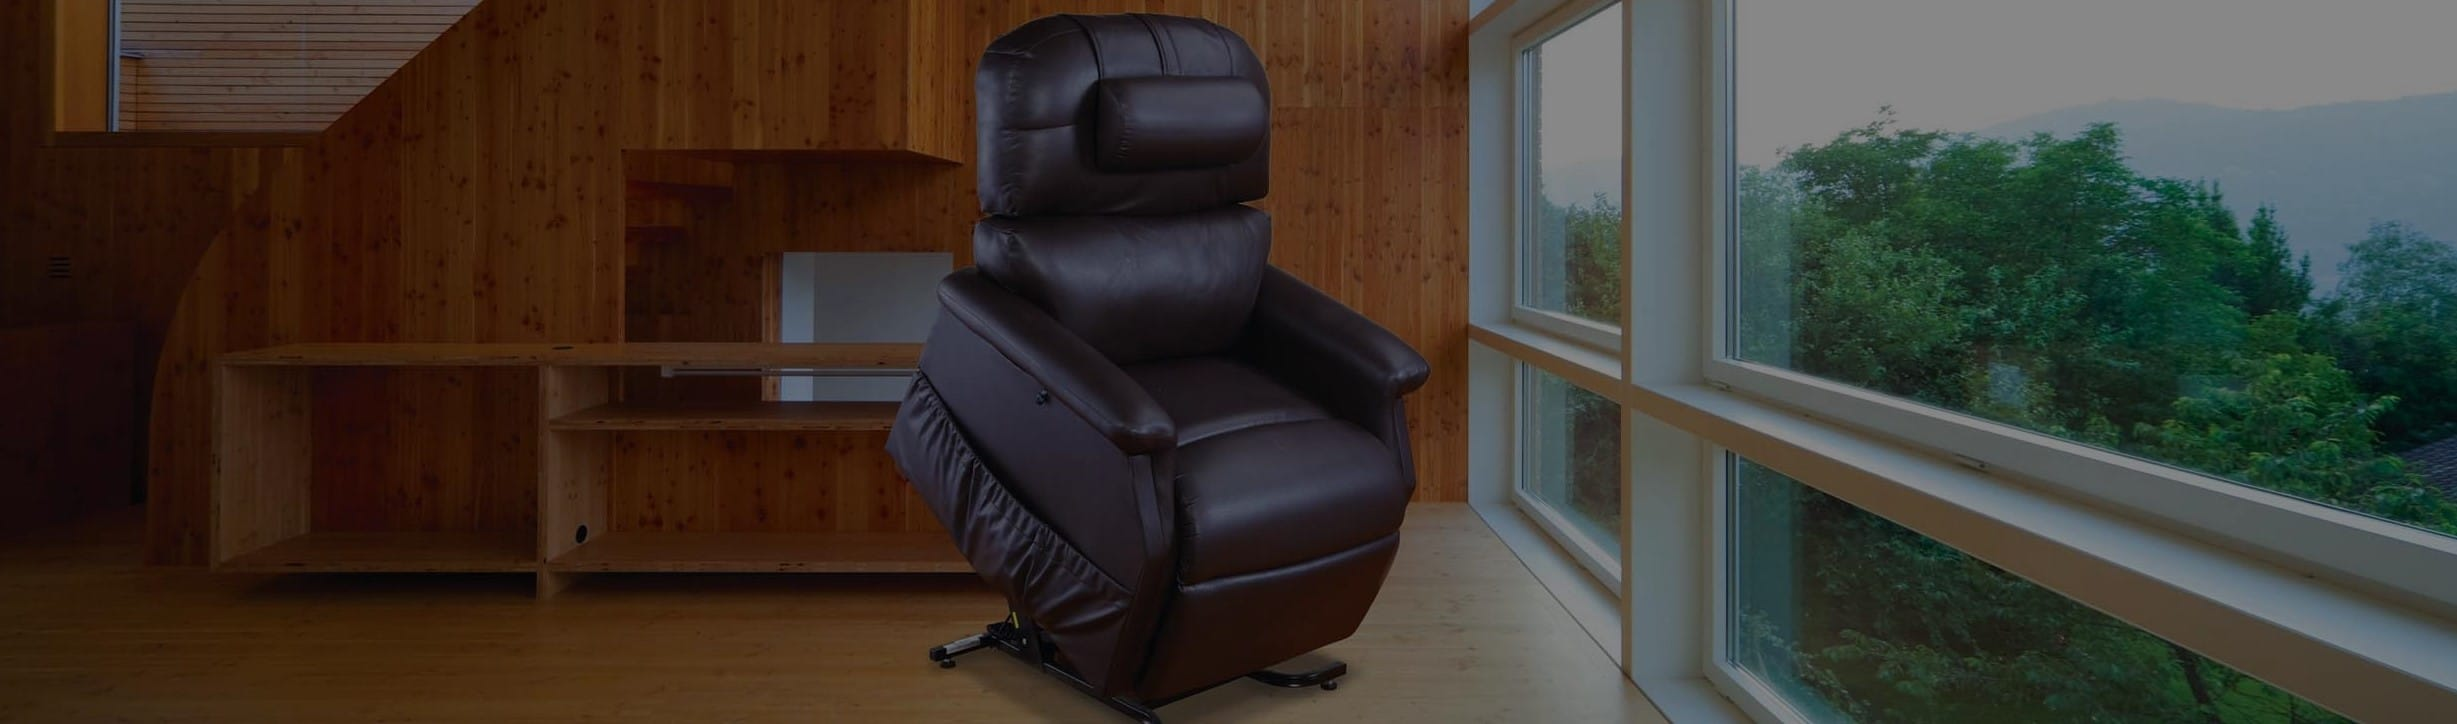 7 Best Lift Chairs Mar 2019 Reviews Buying Guide